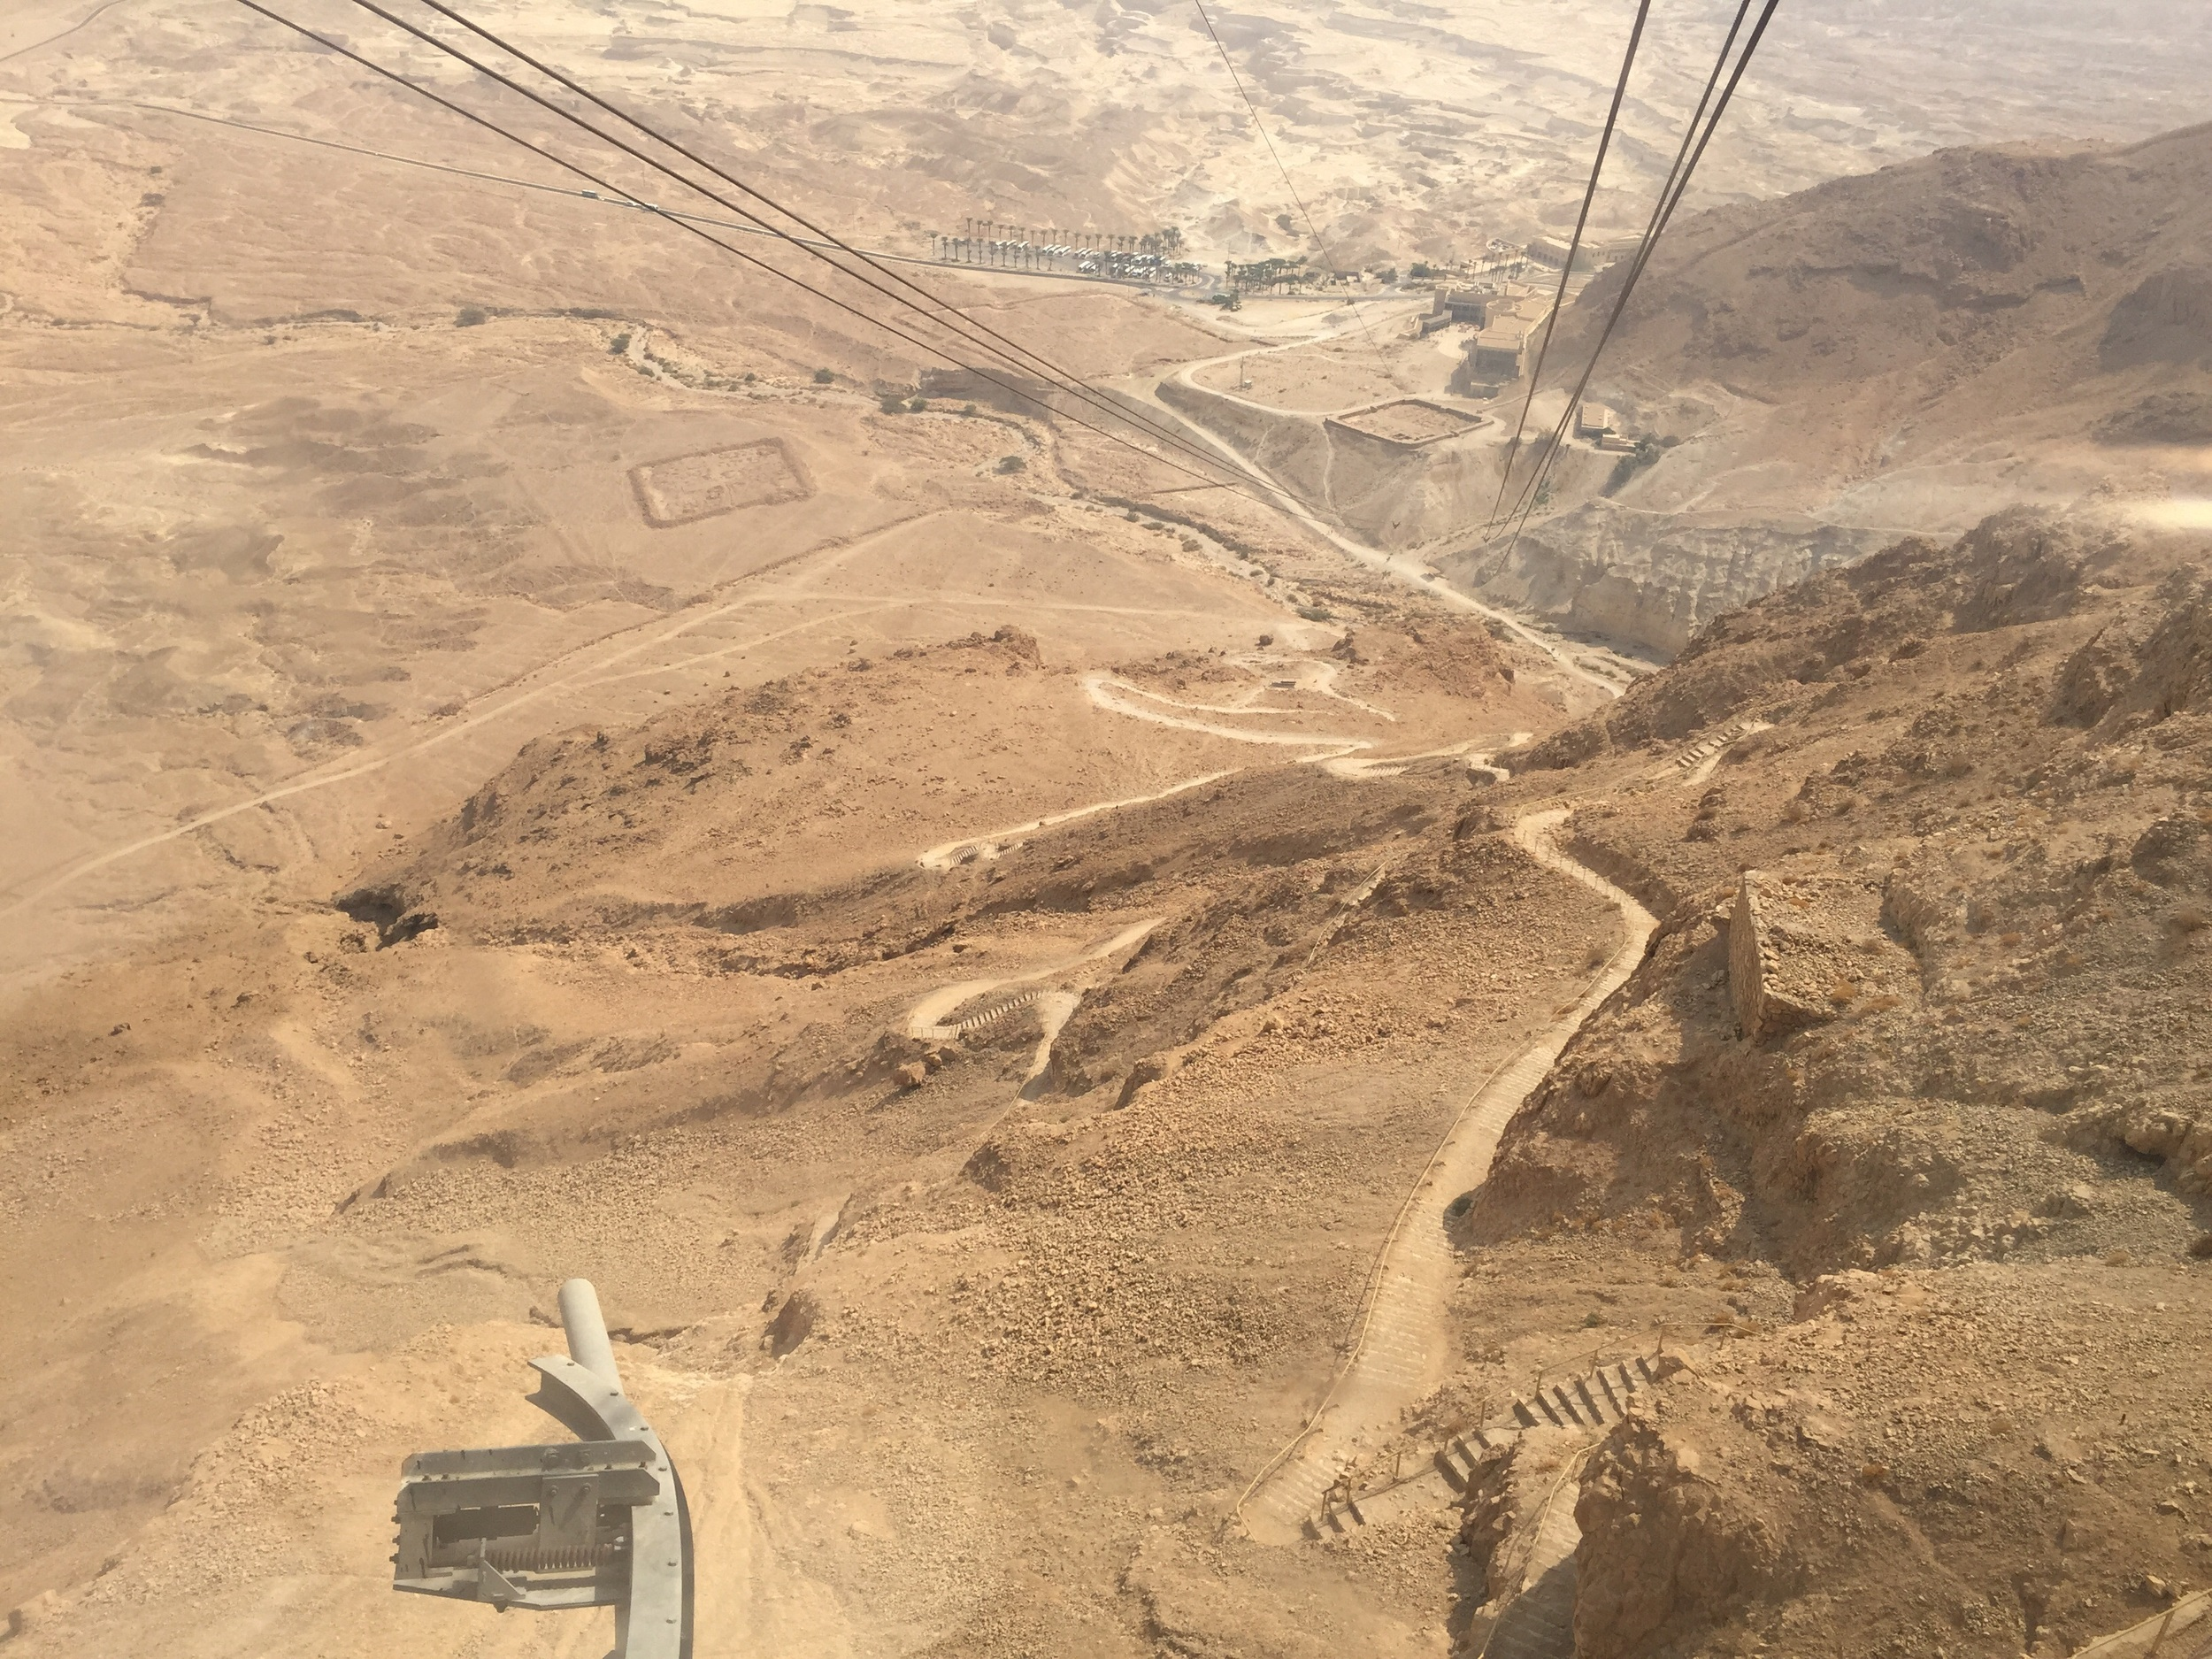 The view down from our cable car at Masada. You can see the two squares that were the Roman encampments, as well as the Snake Path winding its way up.